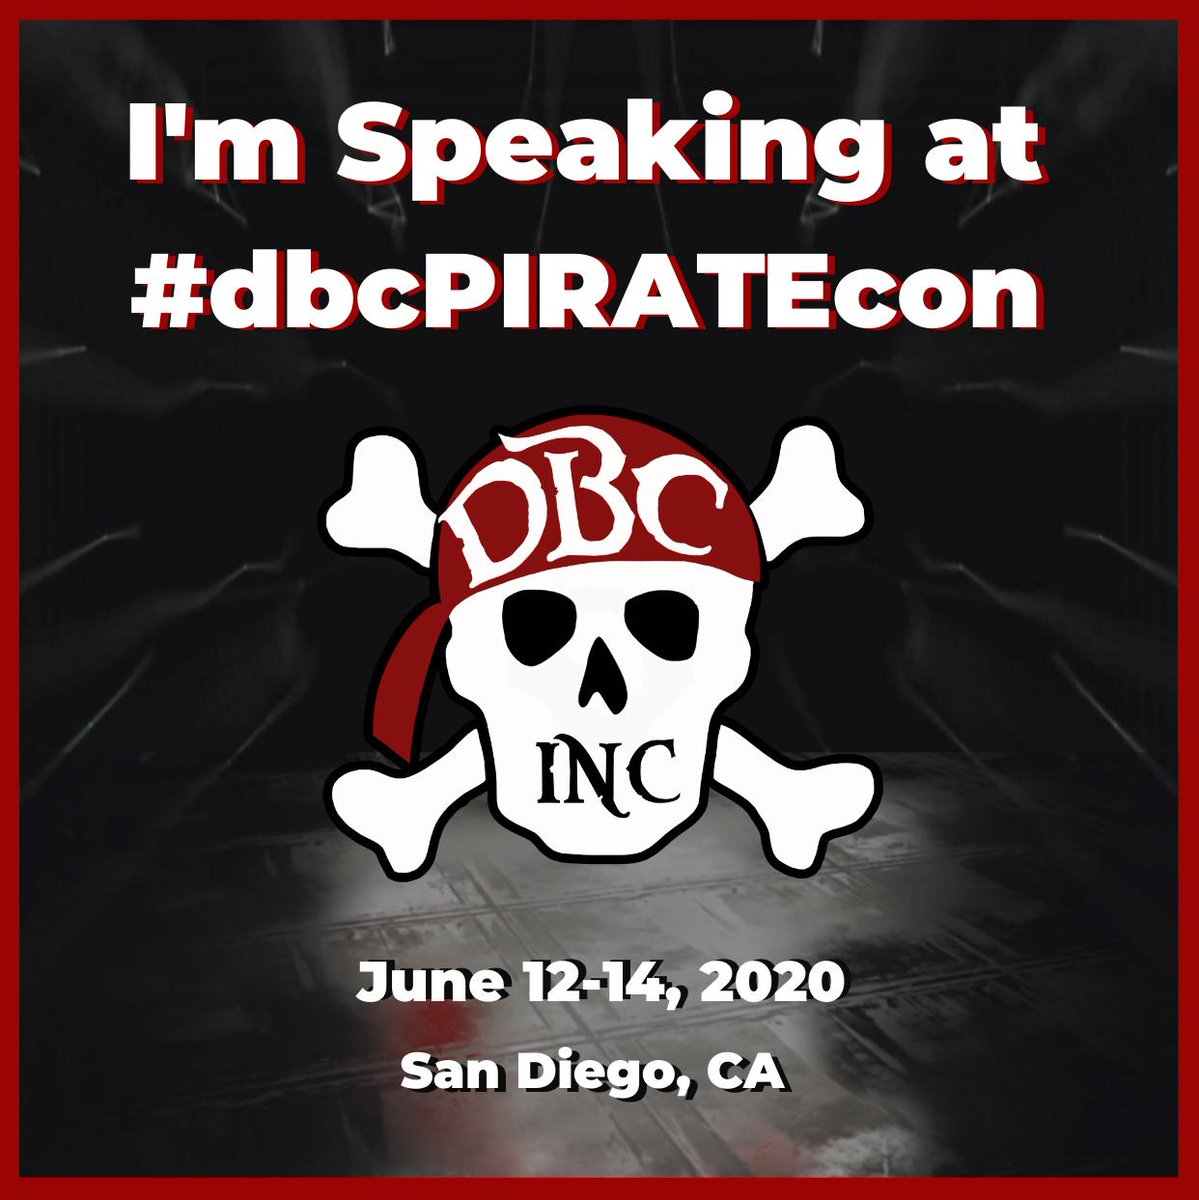 You did #dbcPIRATEcon on June 12-14 - Be there twitter.com/JamieArmin/sta…